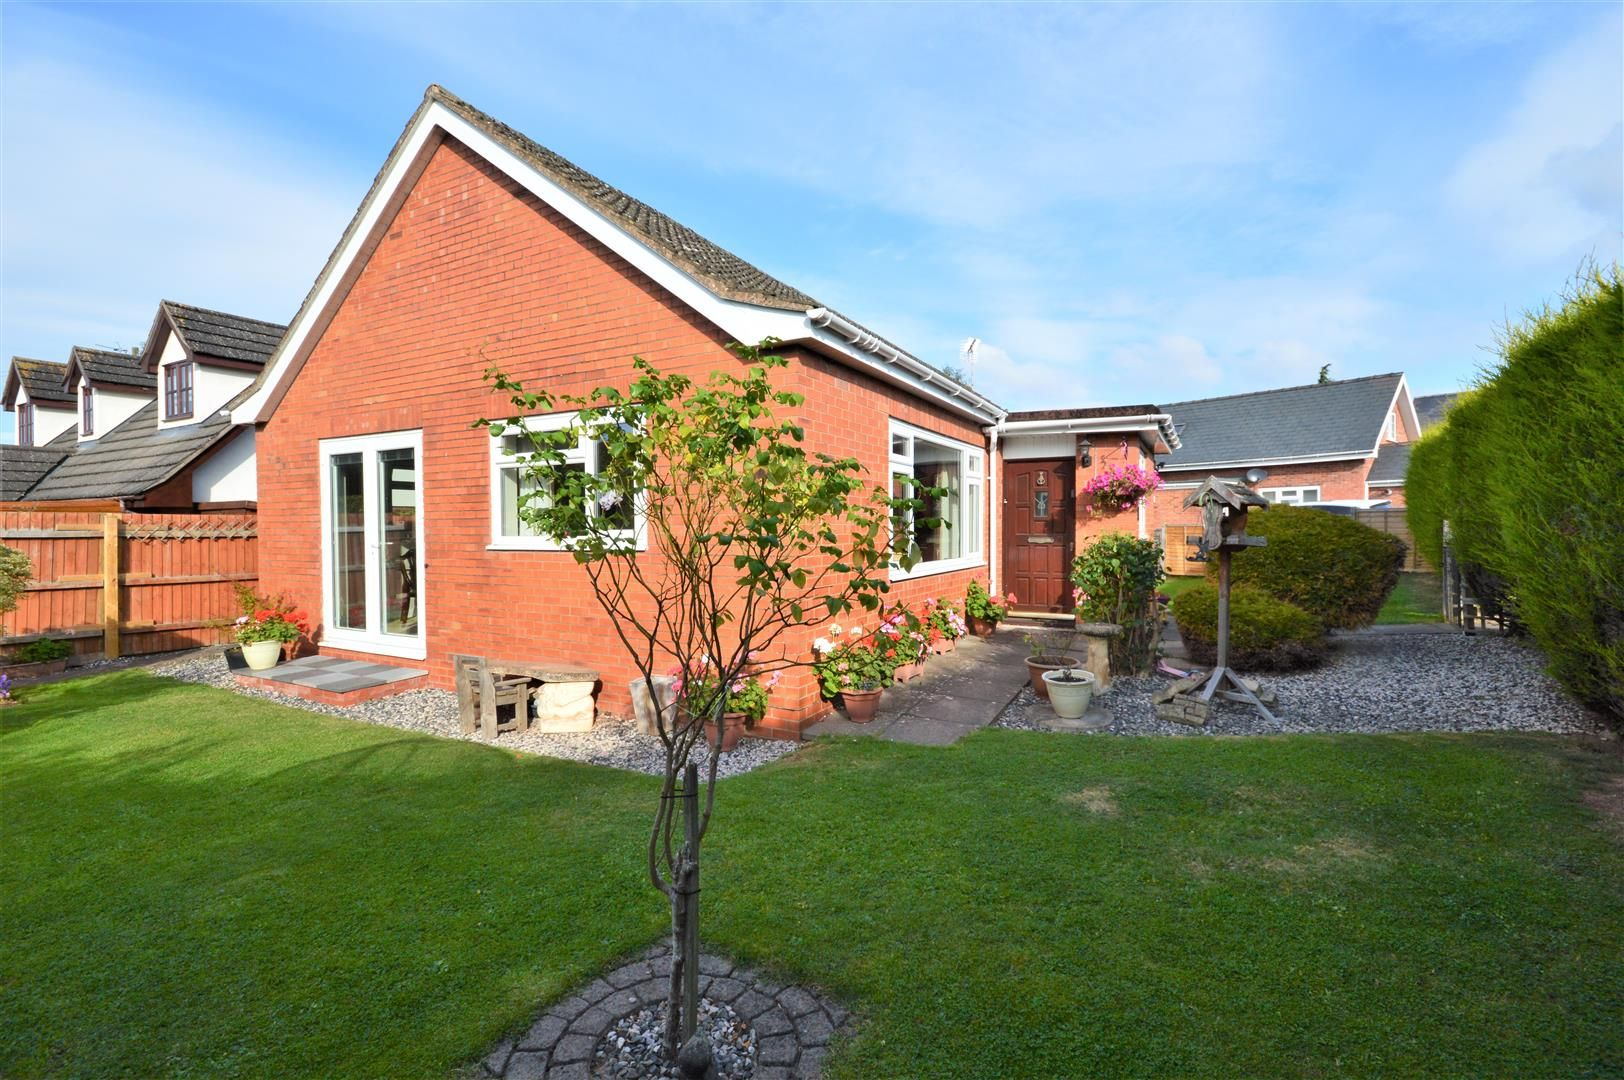 4 bed detached-bungalow for sale in Marden, HR1